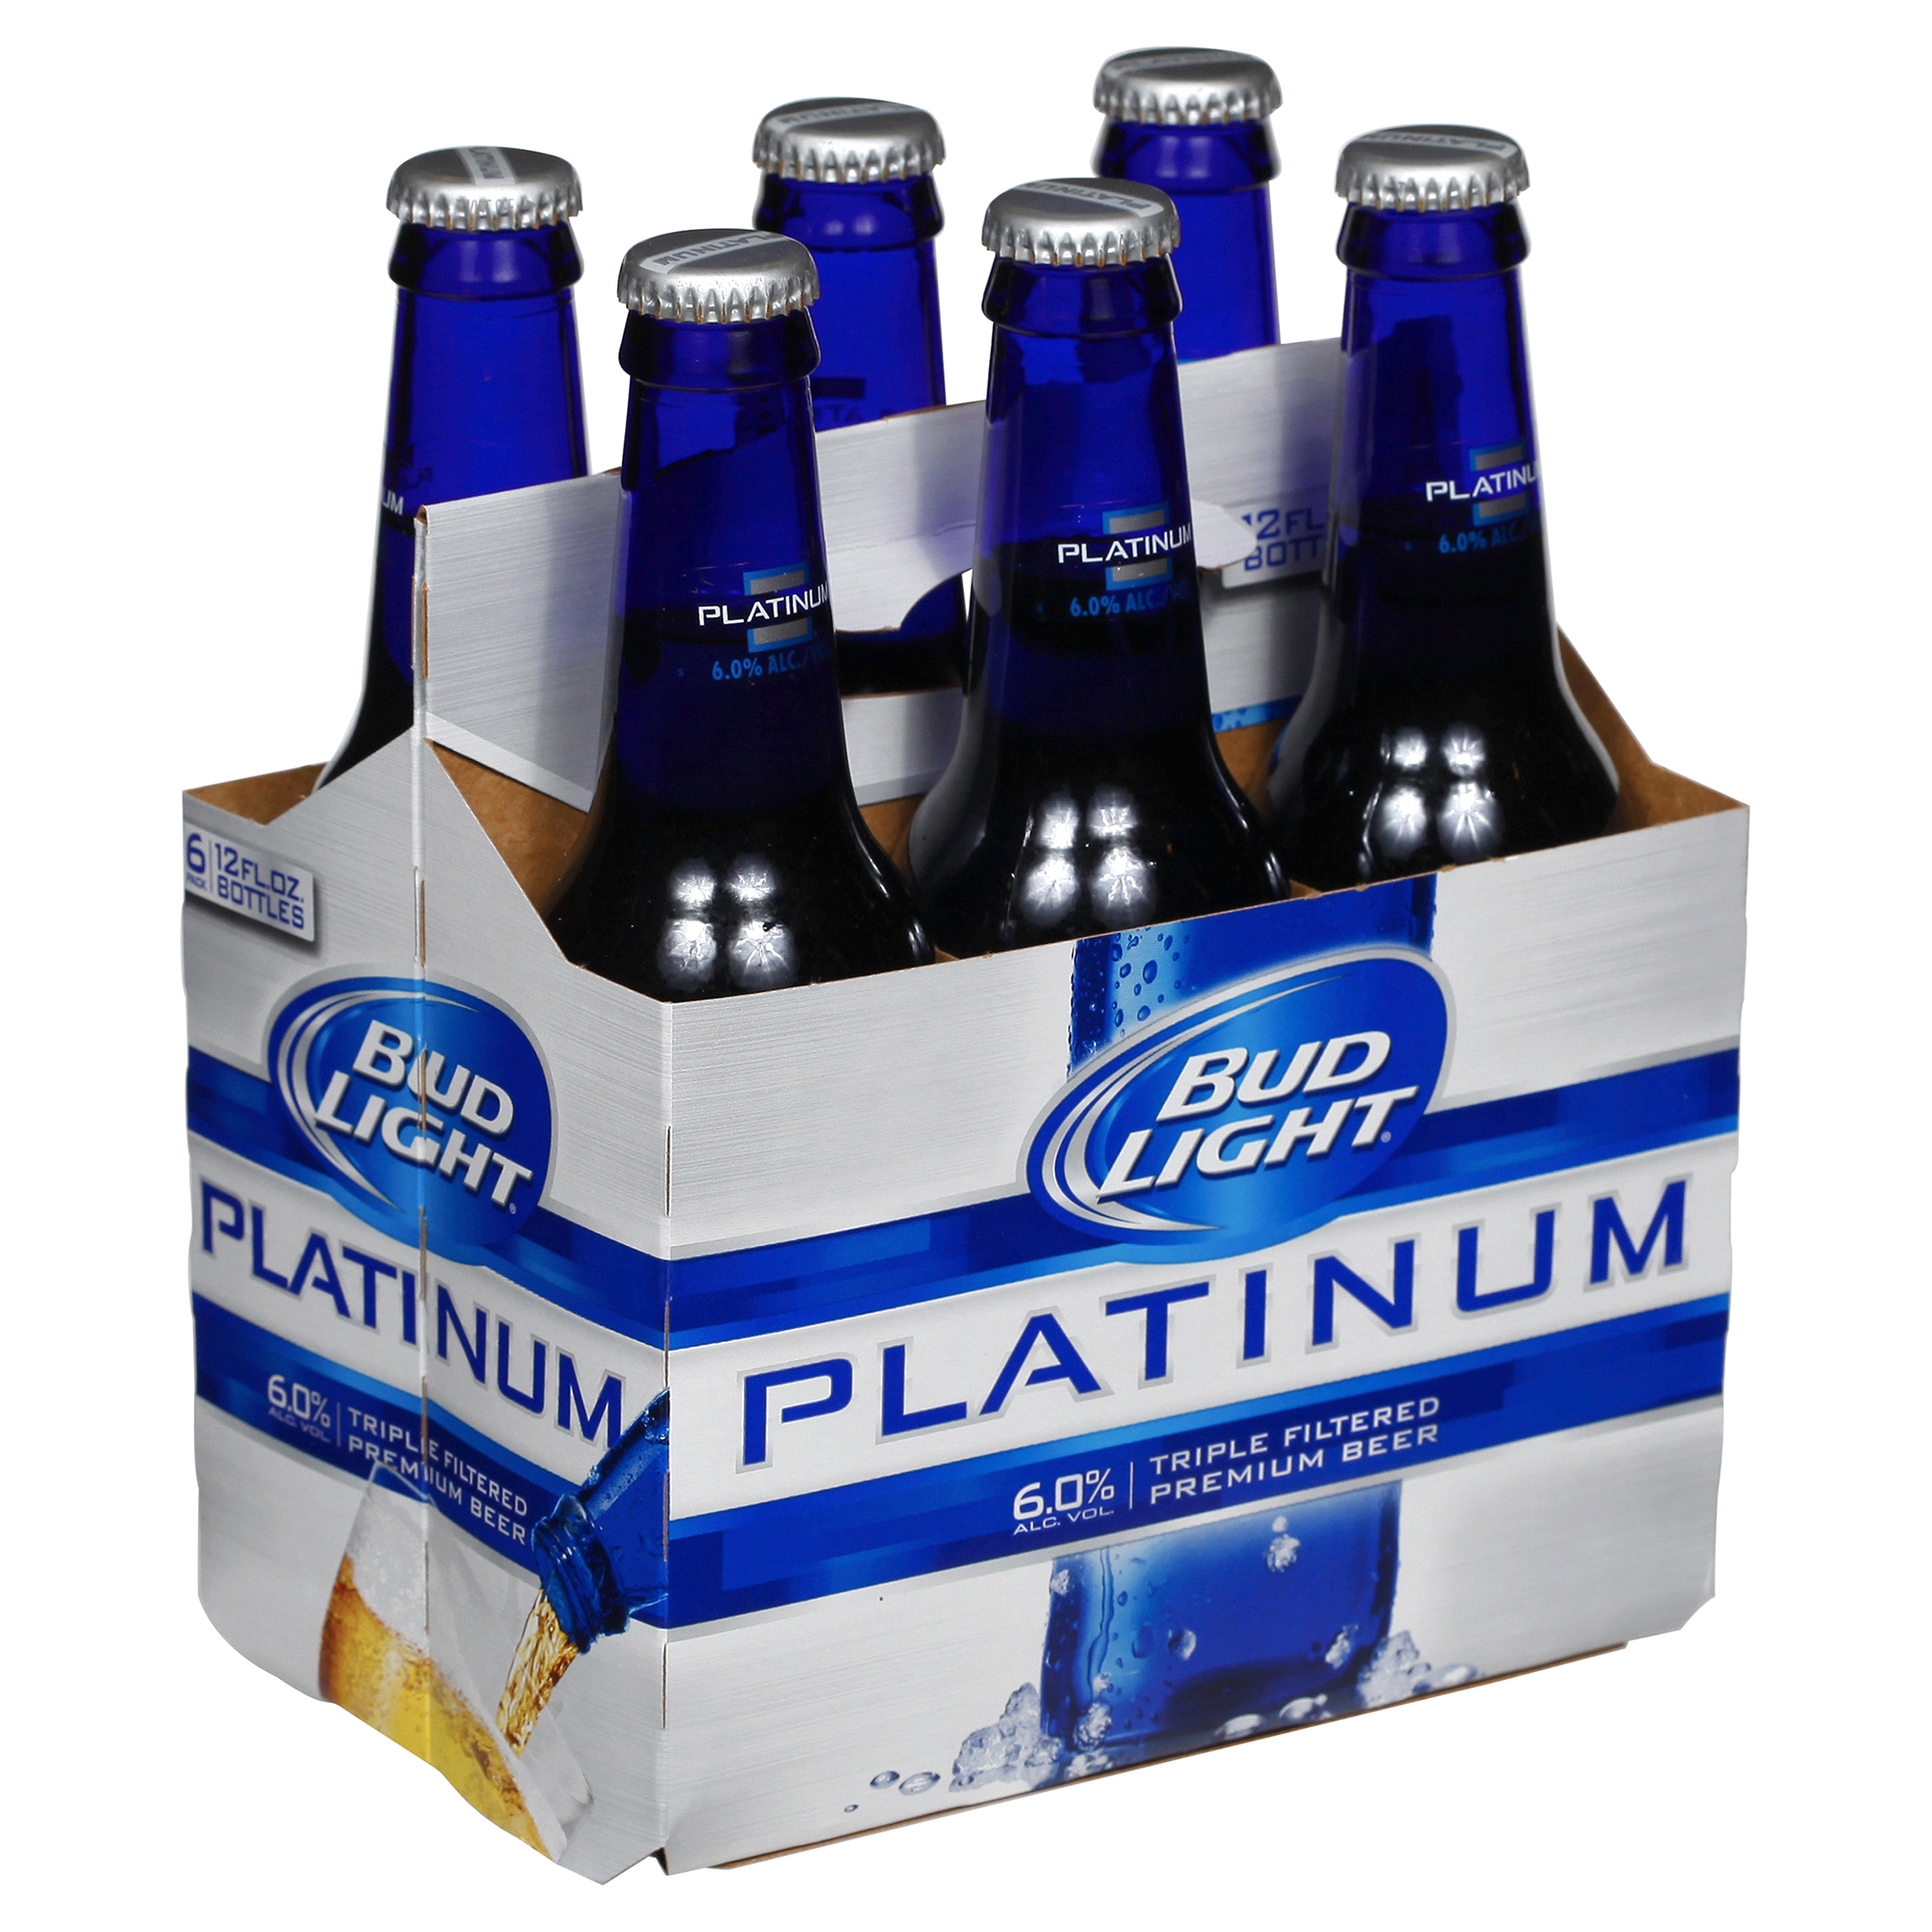 alcohol light platinum bud photo content x of beer